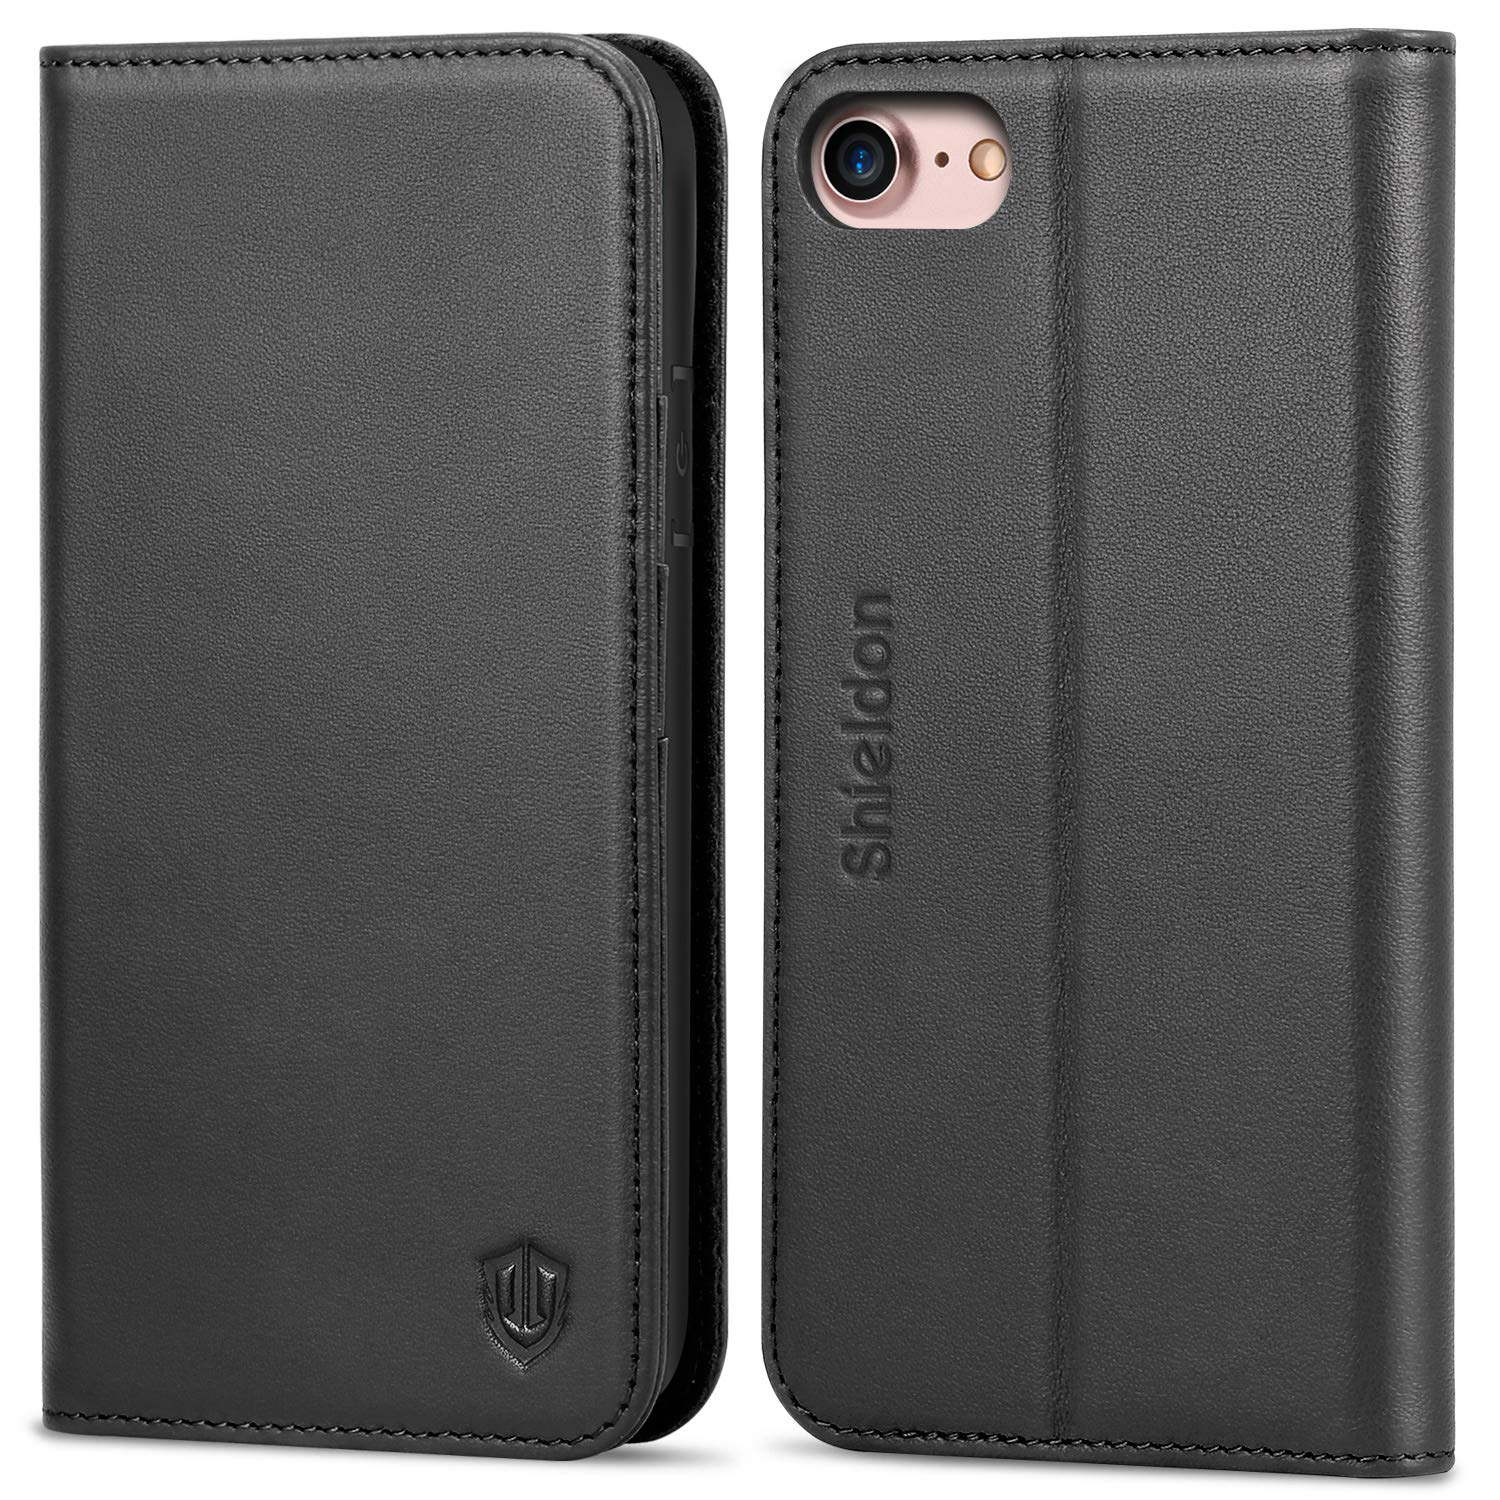 SHIELDON iPhone 8 Case, iPhone 7 Case, iPhone 7 Wallet Case Genuine Leather Premium [Card Holder] [Book Design] Magnetic Closure Stand Flip Cover Case Compatible with iPhone 8 / iPhone 7 - Black by SHIELDON